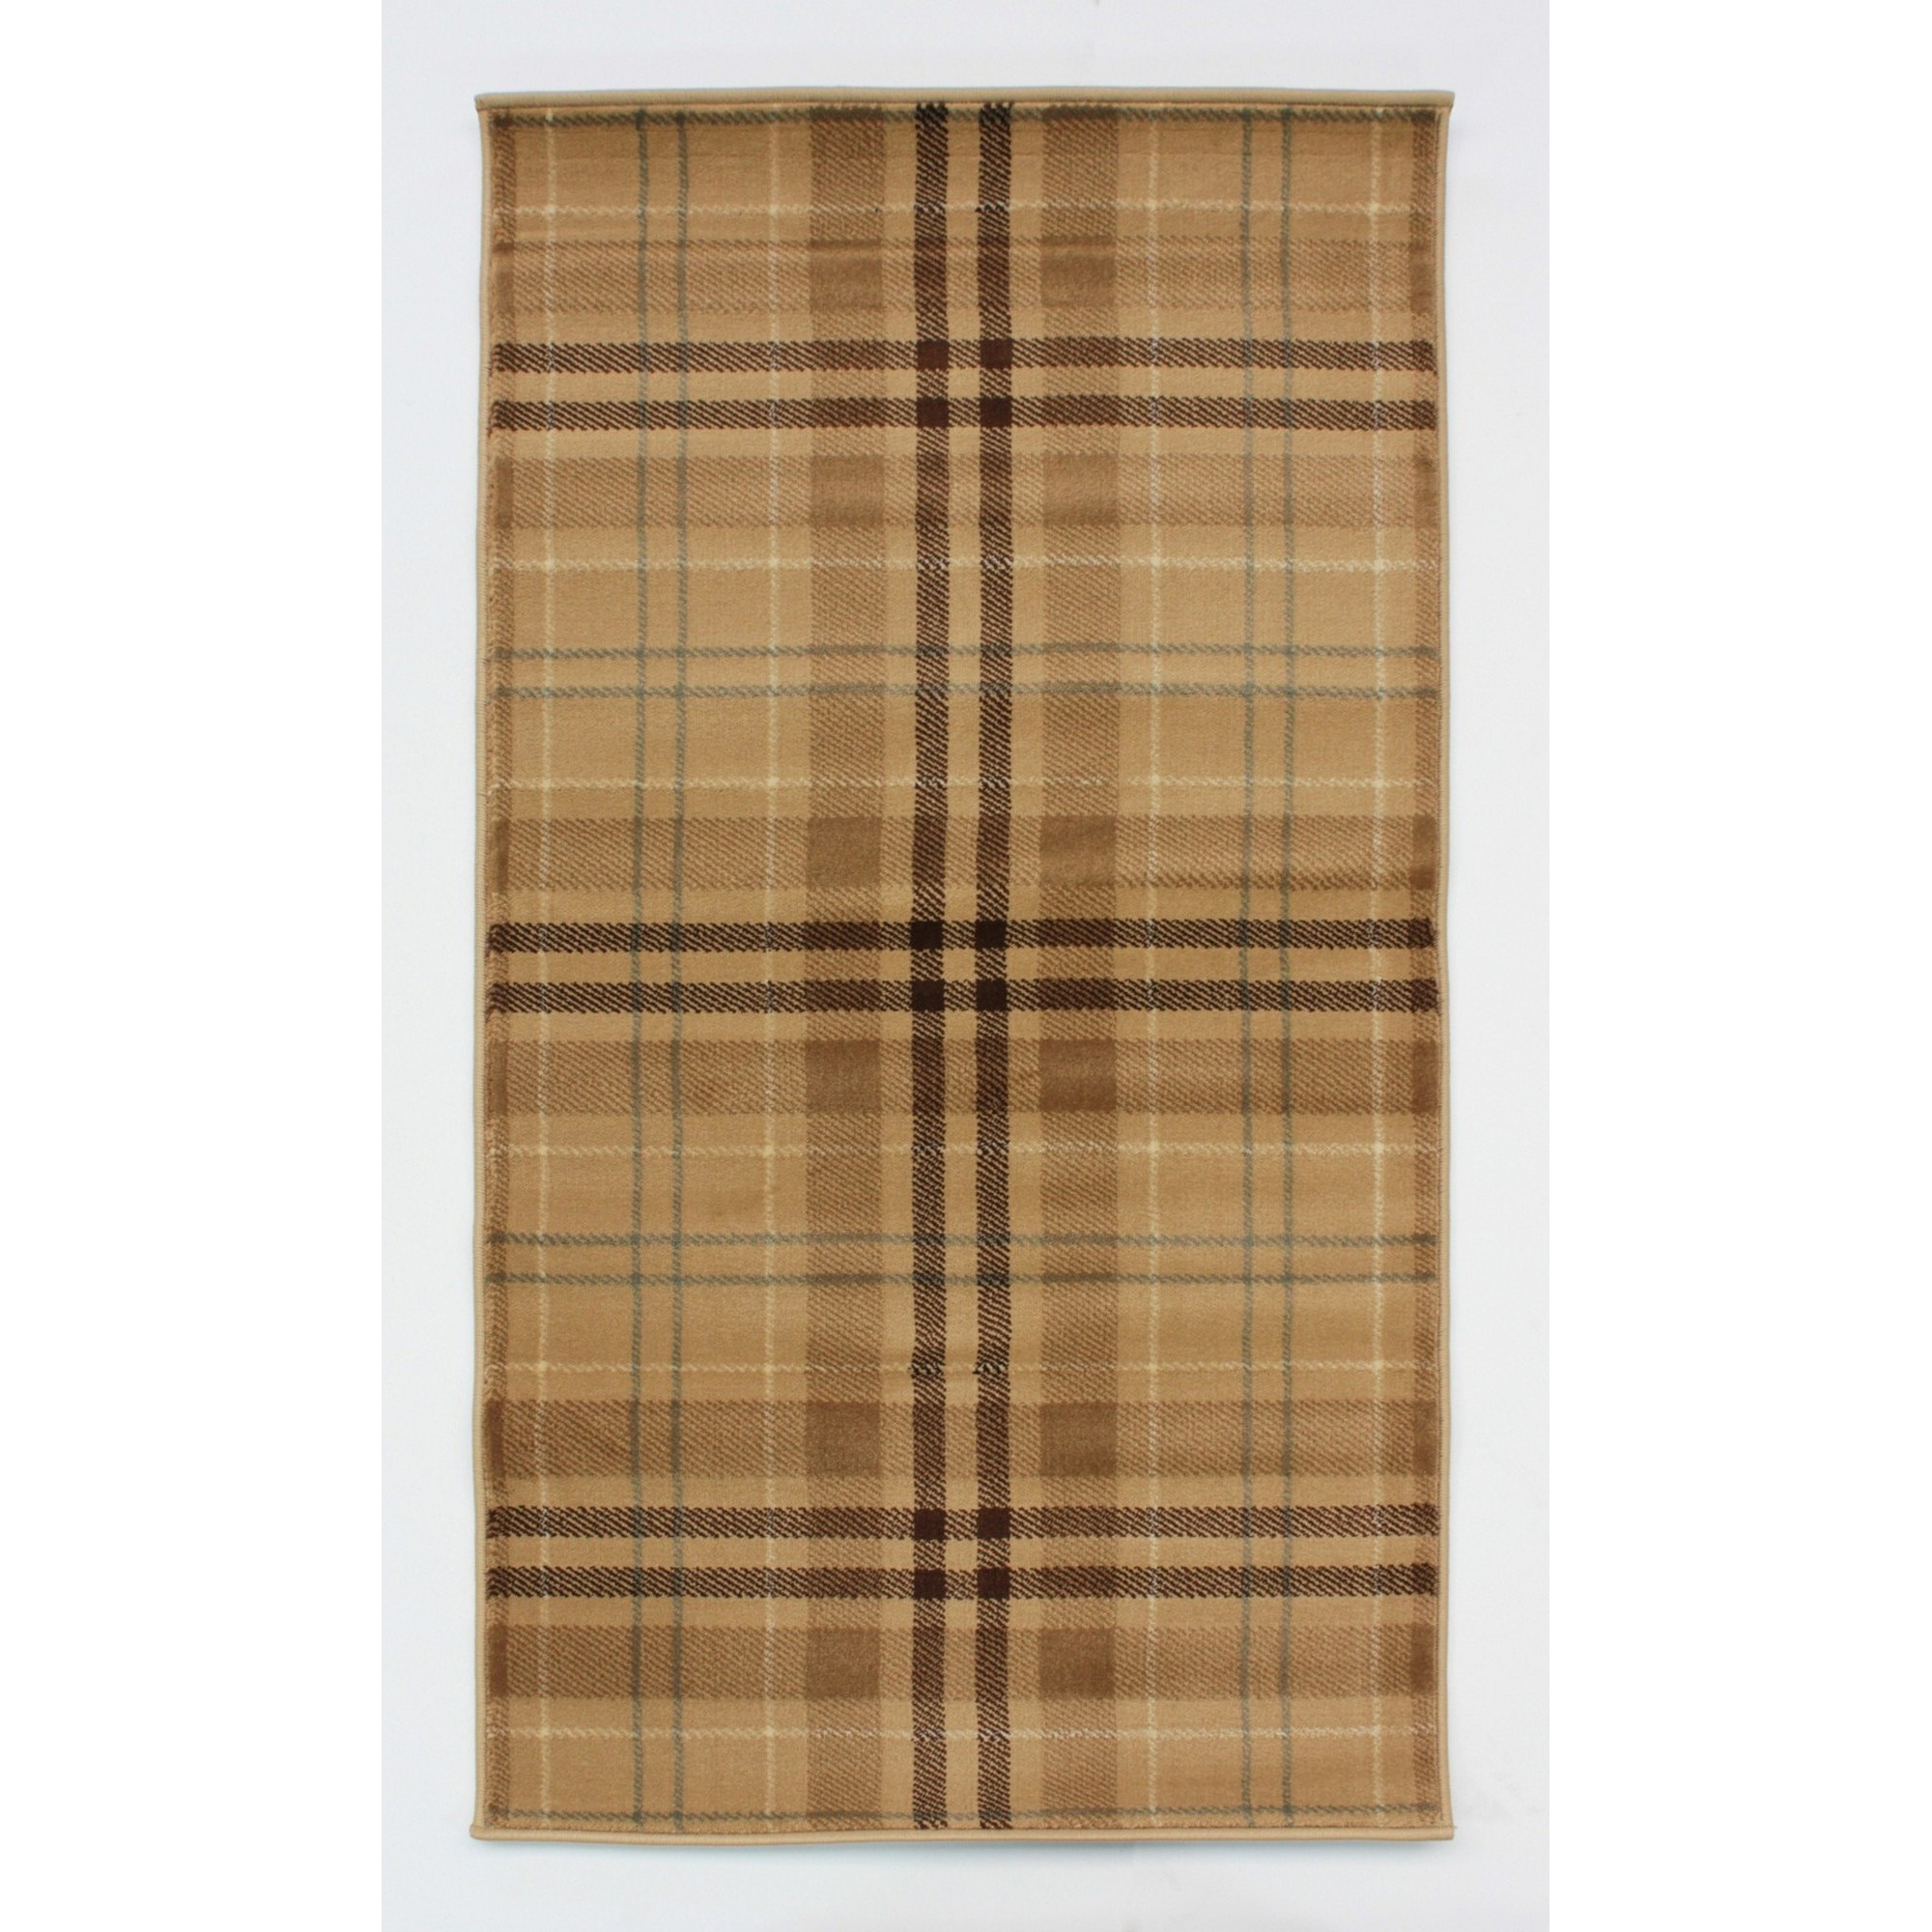 Plaid Rug: Flair Rugs Glen Kilry Tartan Checked Floor Rug